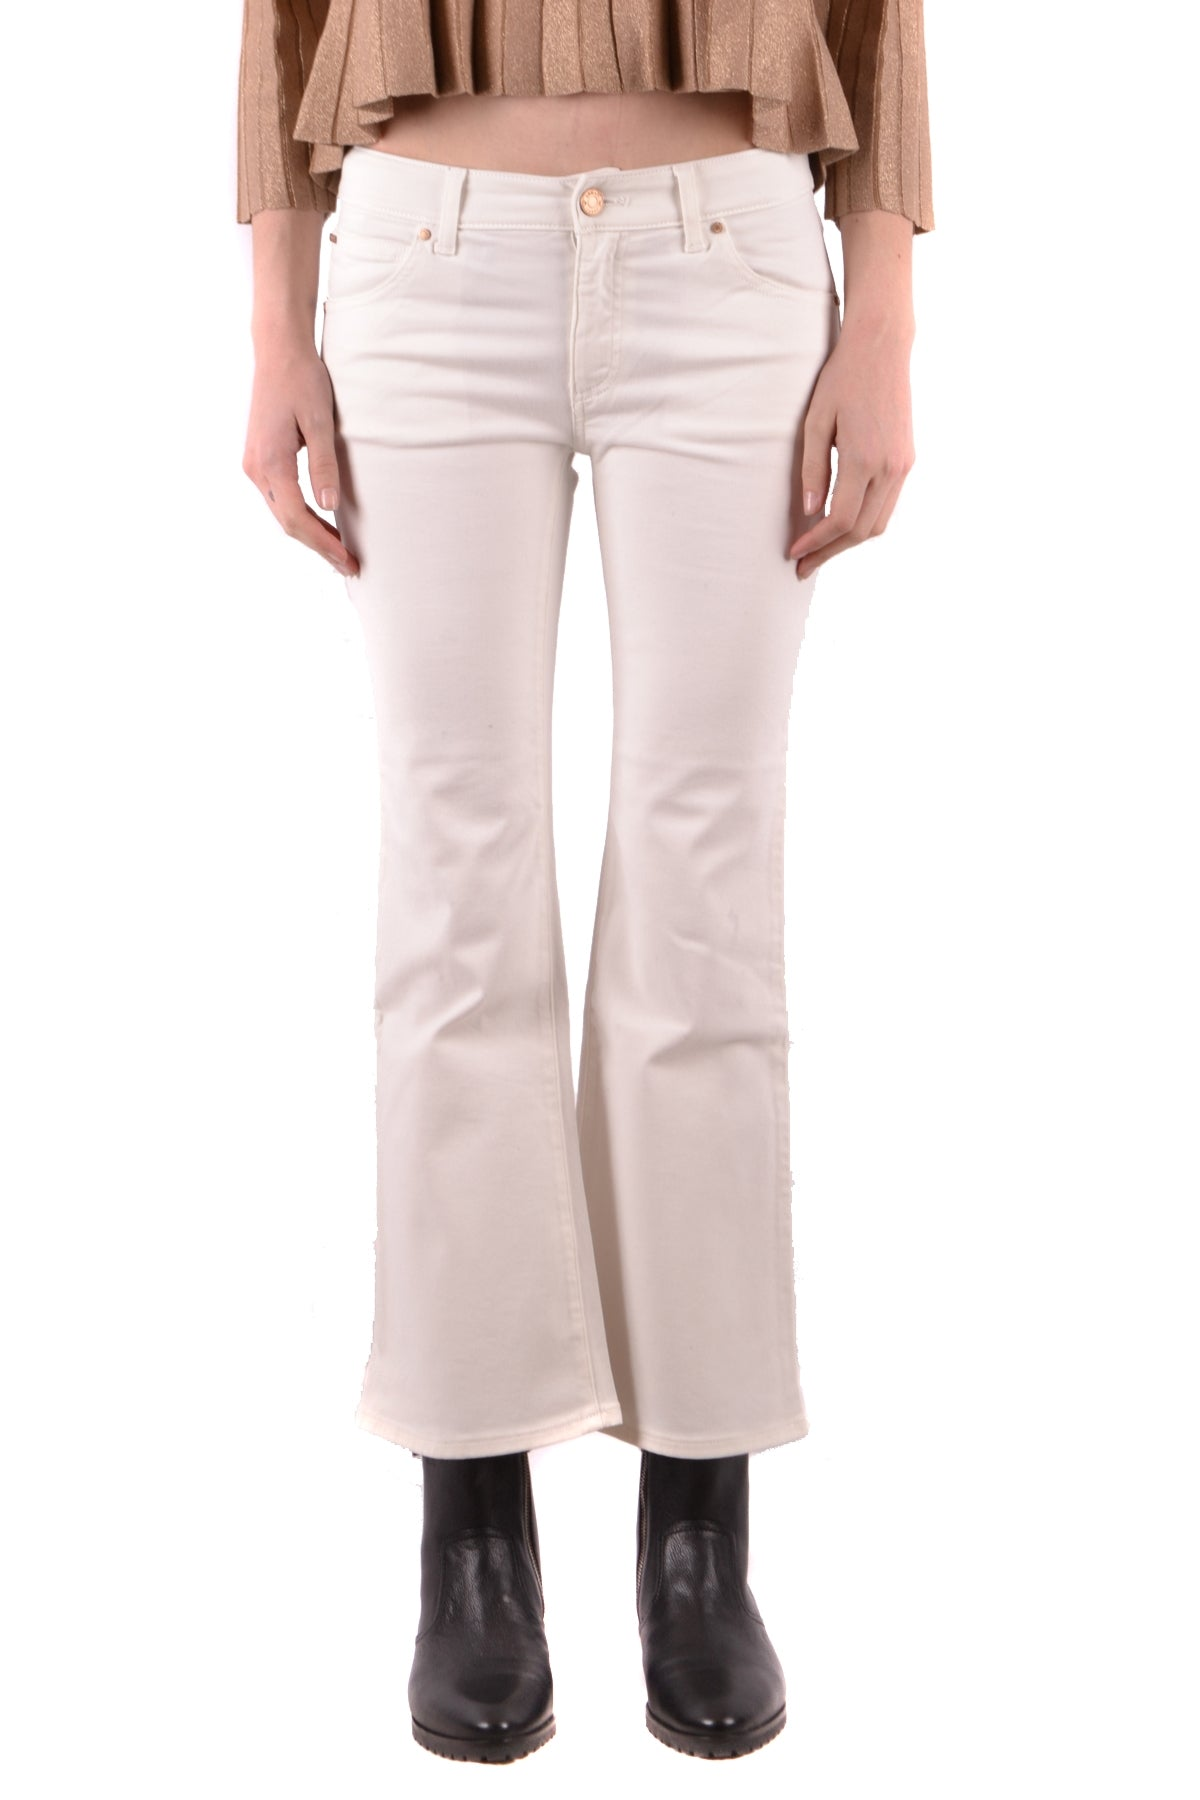 Jeans Armani Jeans-Jeans - WOMAN-25-Product Details Terms: New With LabelYear: 2018Main Color: WhiteGender: WomanMade In: RomaniaManufacturer Part Number: 6Y5J04 5N2FzSize: UsSeason: Spring / SummerClothing Type: JeansComposition: Cotton 98%, Elastane 2%-Keyomi-Sook